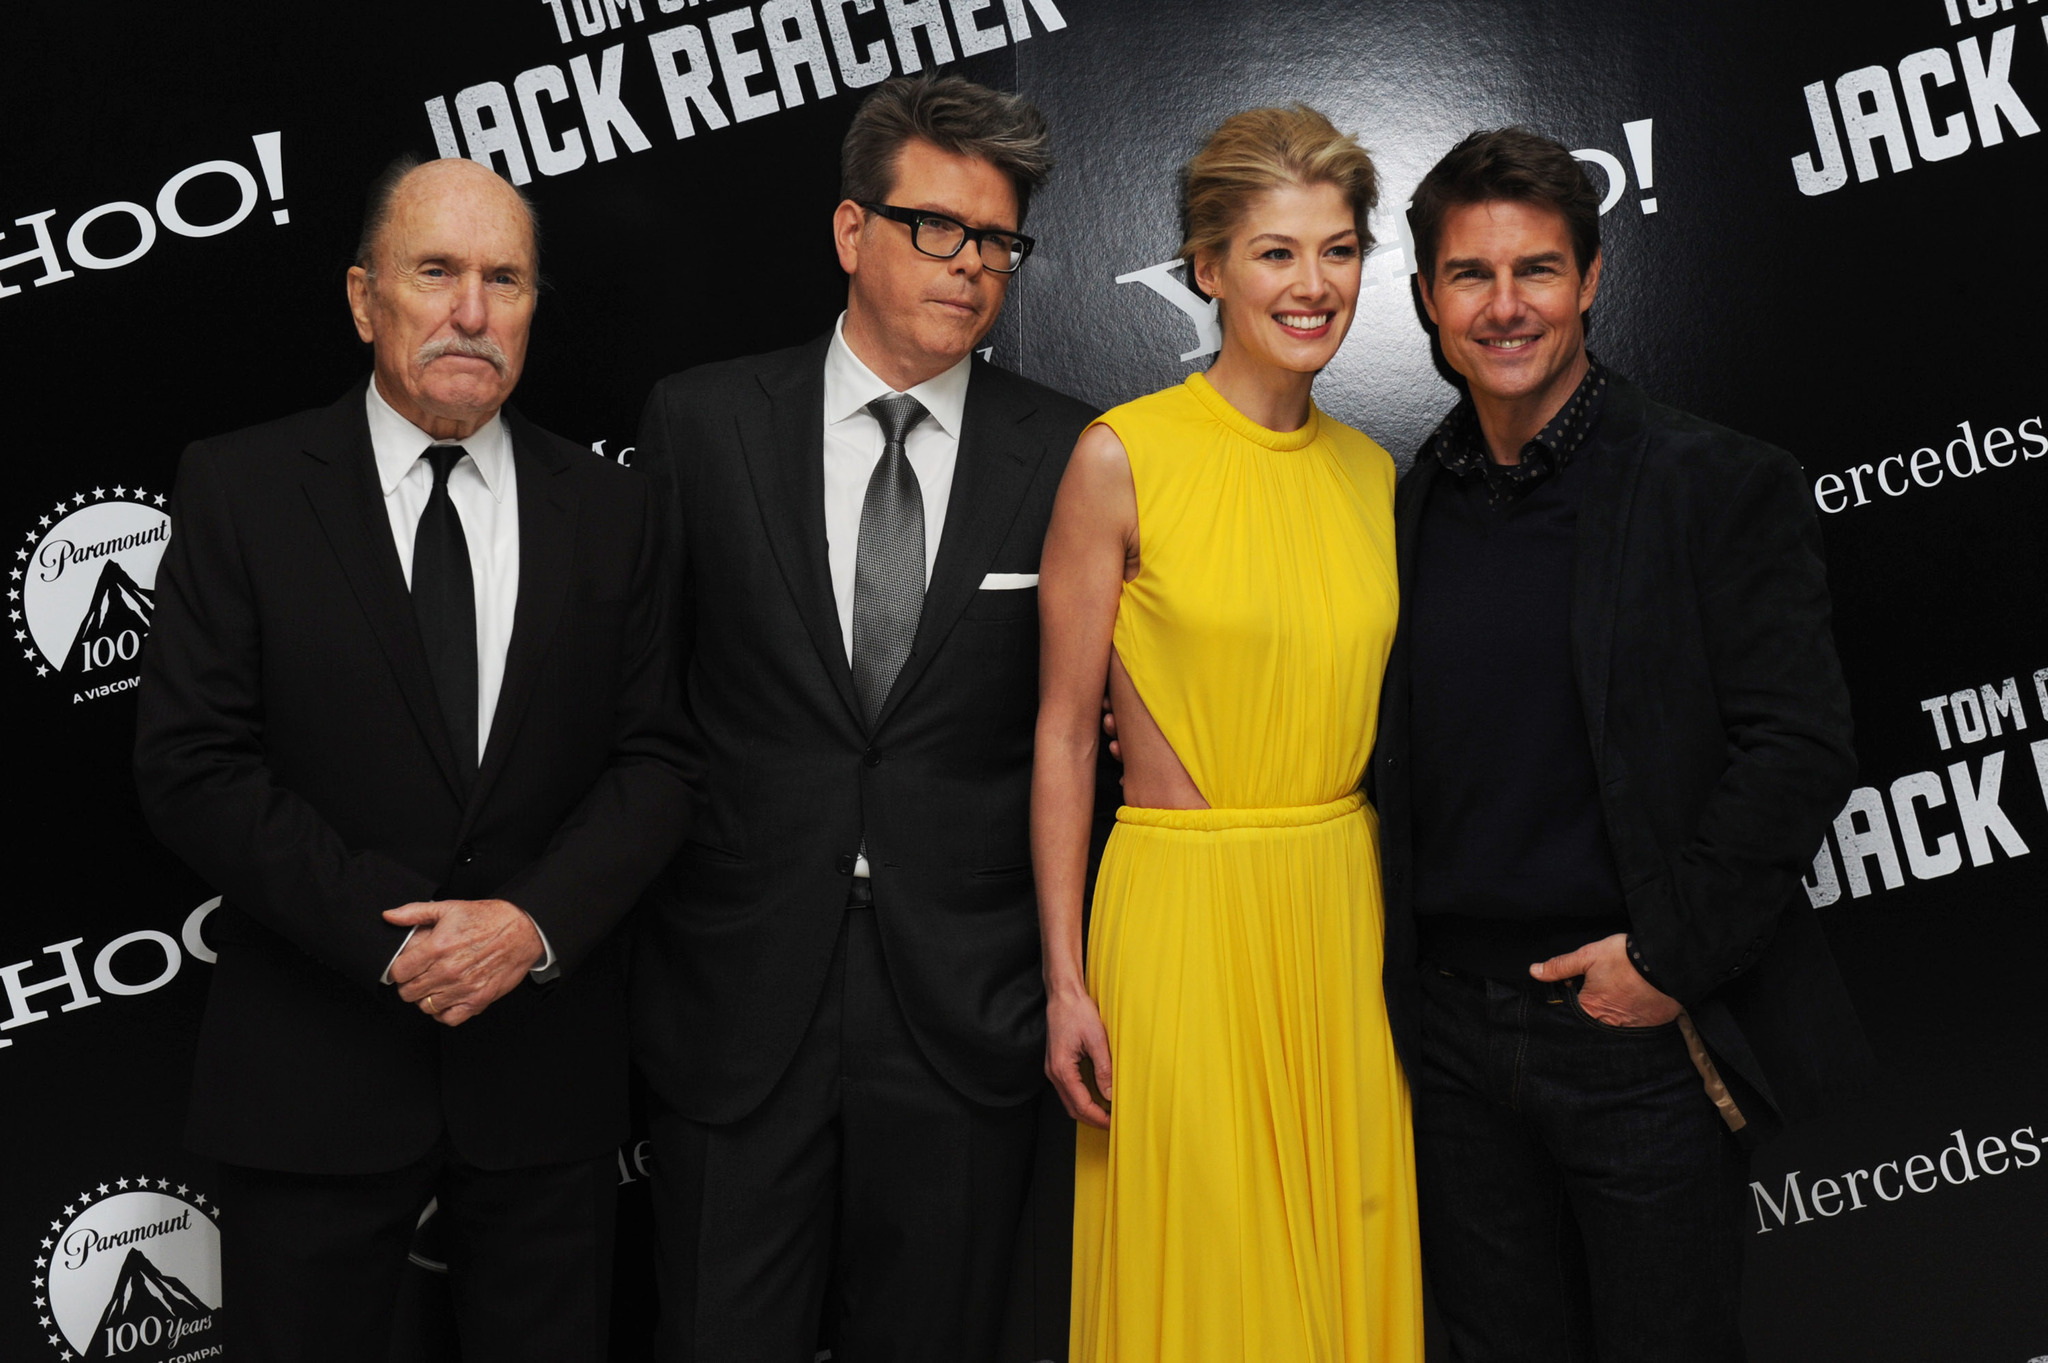 Tom Cruise, Robert Duvall, Christopher McQuarrie, and Rosamund Pike at an event for Jack Reacher (2012)